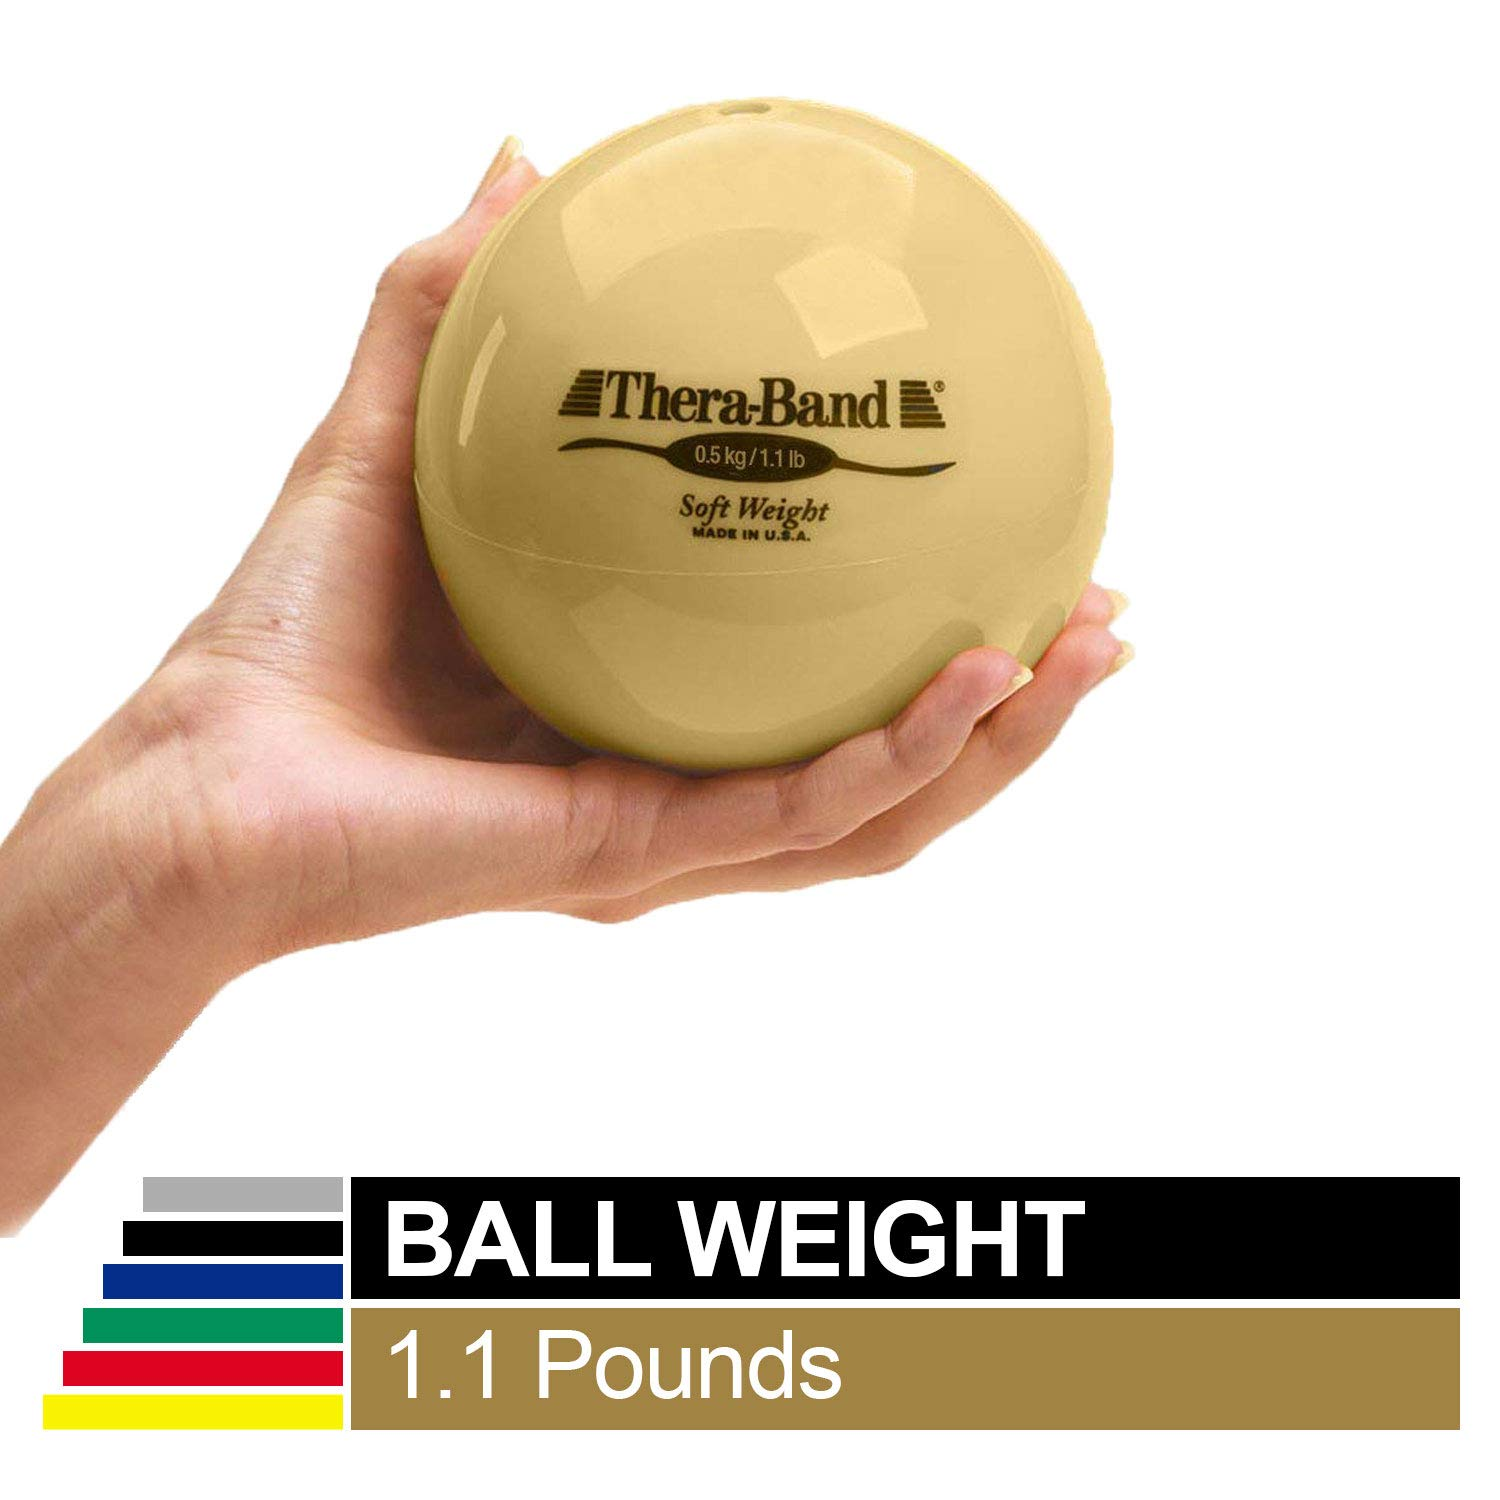 Biofreeze Soft Weight, Hand Held Ball Shaped Isotonic Weight for Strength Training Rehab Exercises, Pilates, Yoga, Toning Workouts, Home Exercise Equipment Balls, 4.5 Diameter, Tan, 1.1 Pound